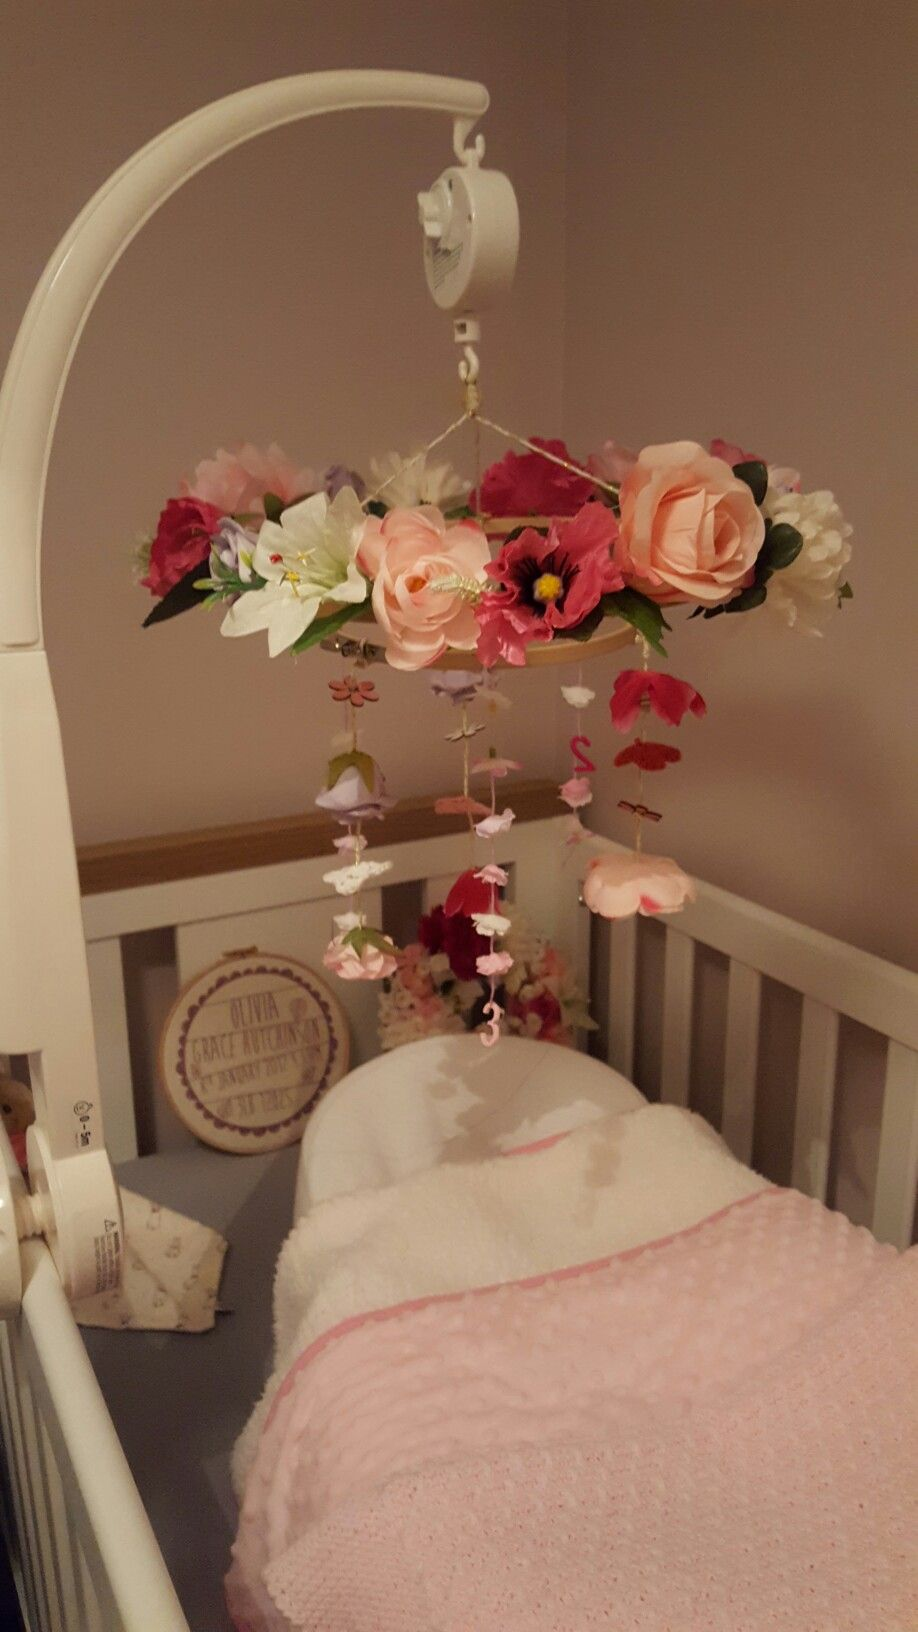 diy woodland nursery mobile for baby girls room babies habitacion bebe ni a cosas para. Black Bedroom Furniture Sets. Home Design Ideas